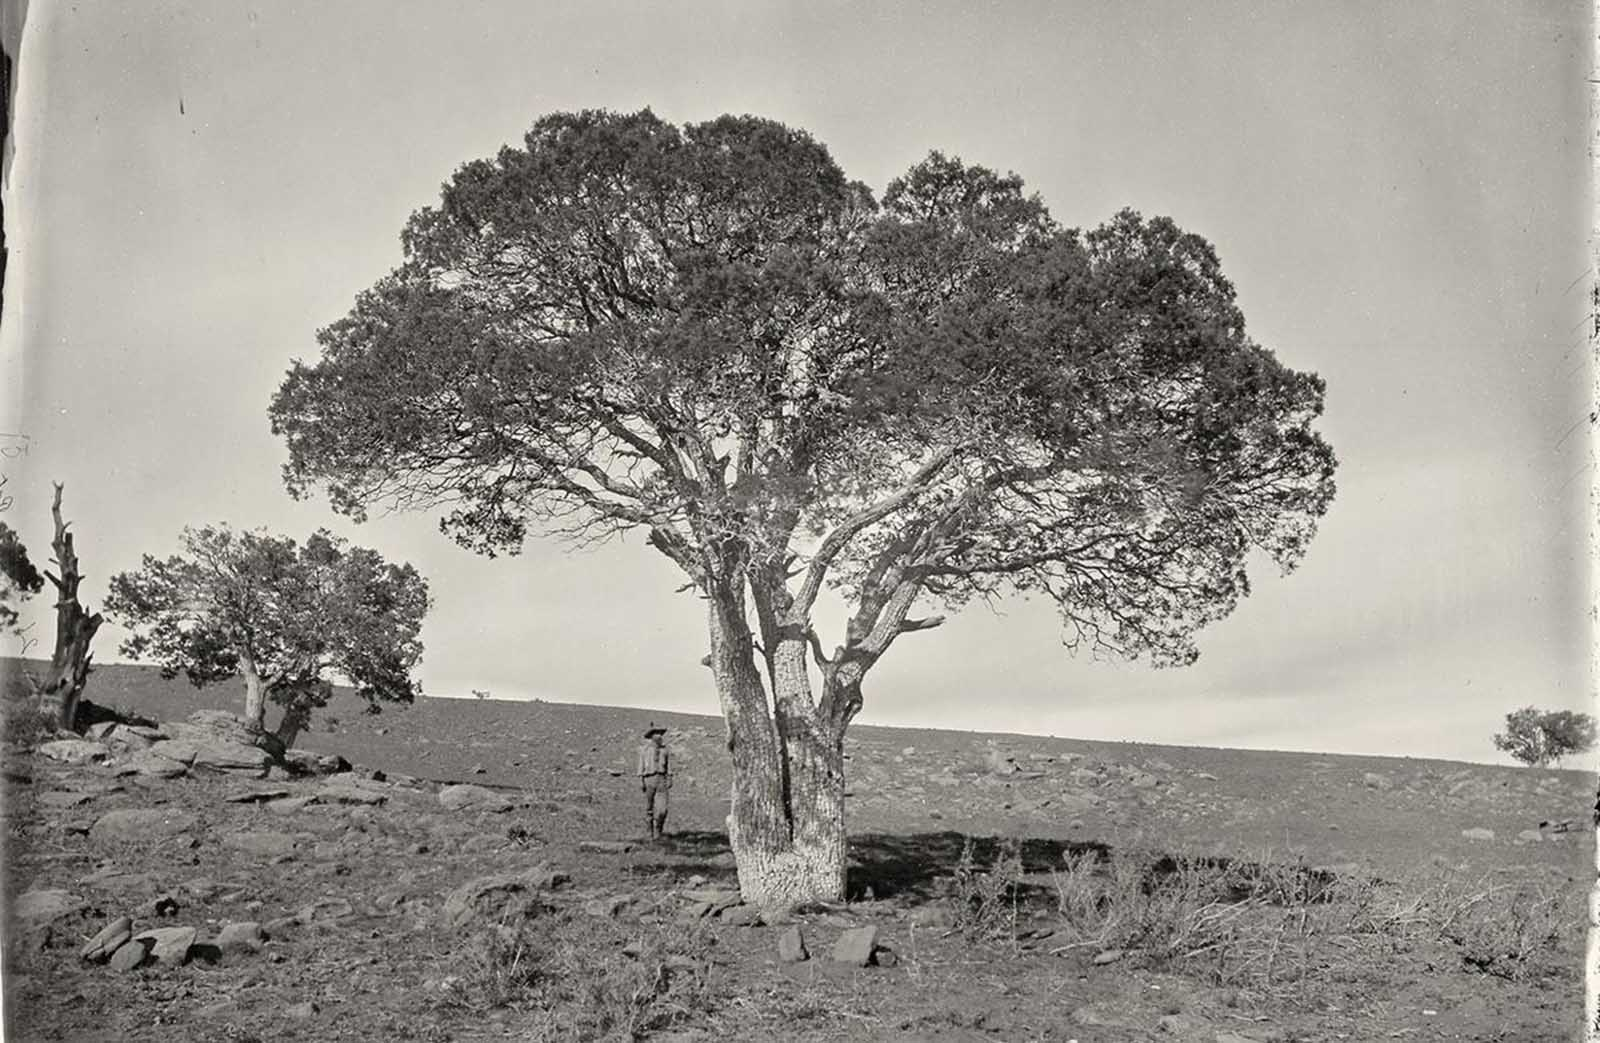 Oak Grove, White Mountains, Sierra Blanca, Arizona in 1873.